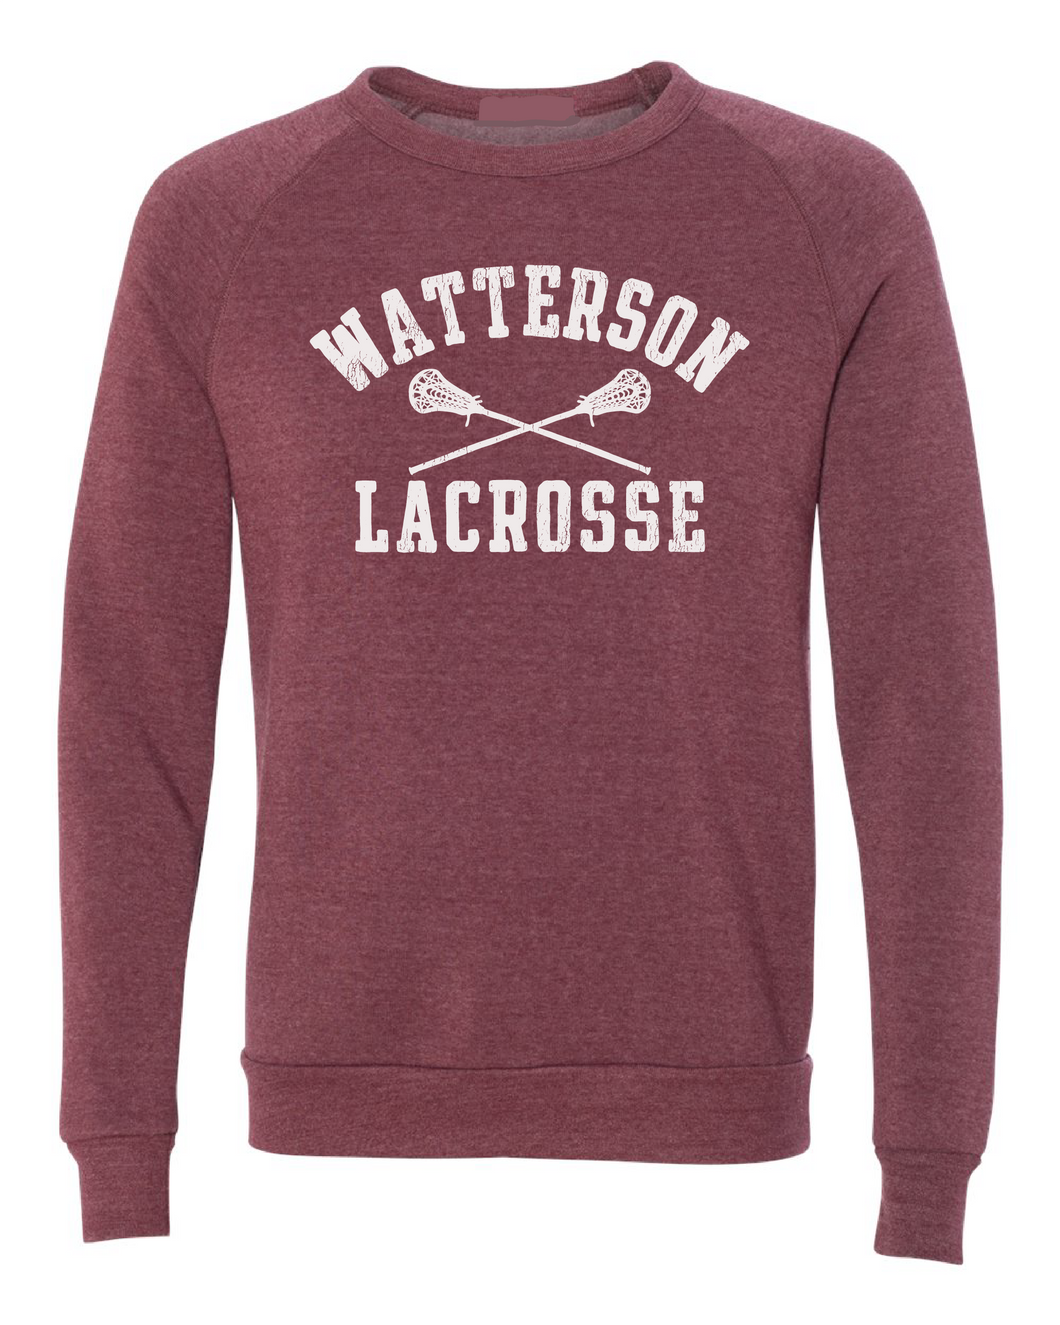 LAX Sunday Morning Sweatshirt